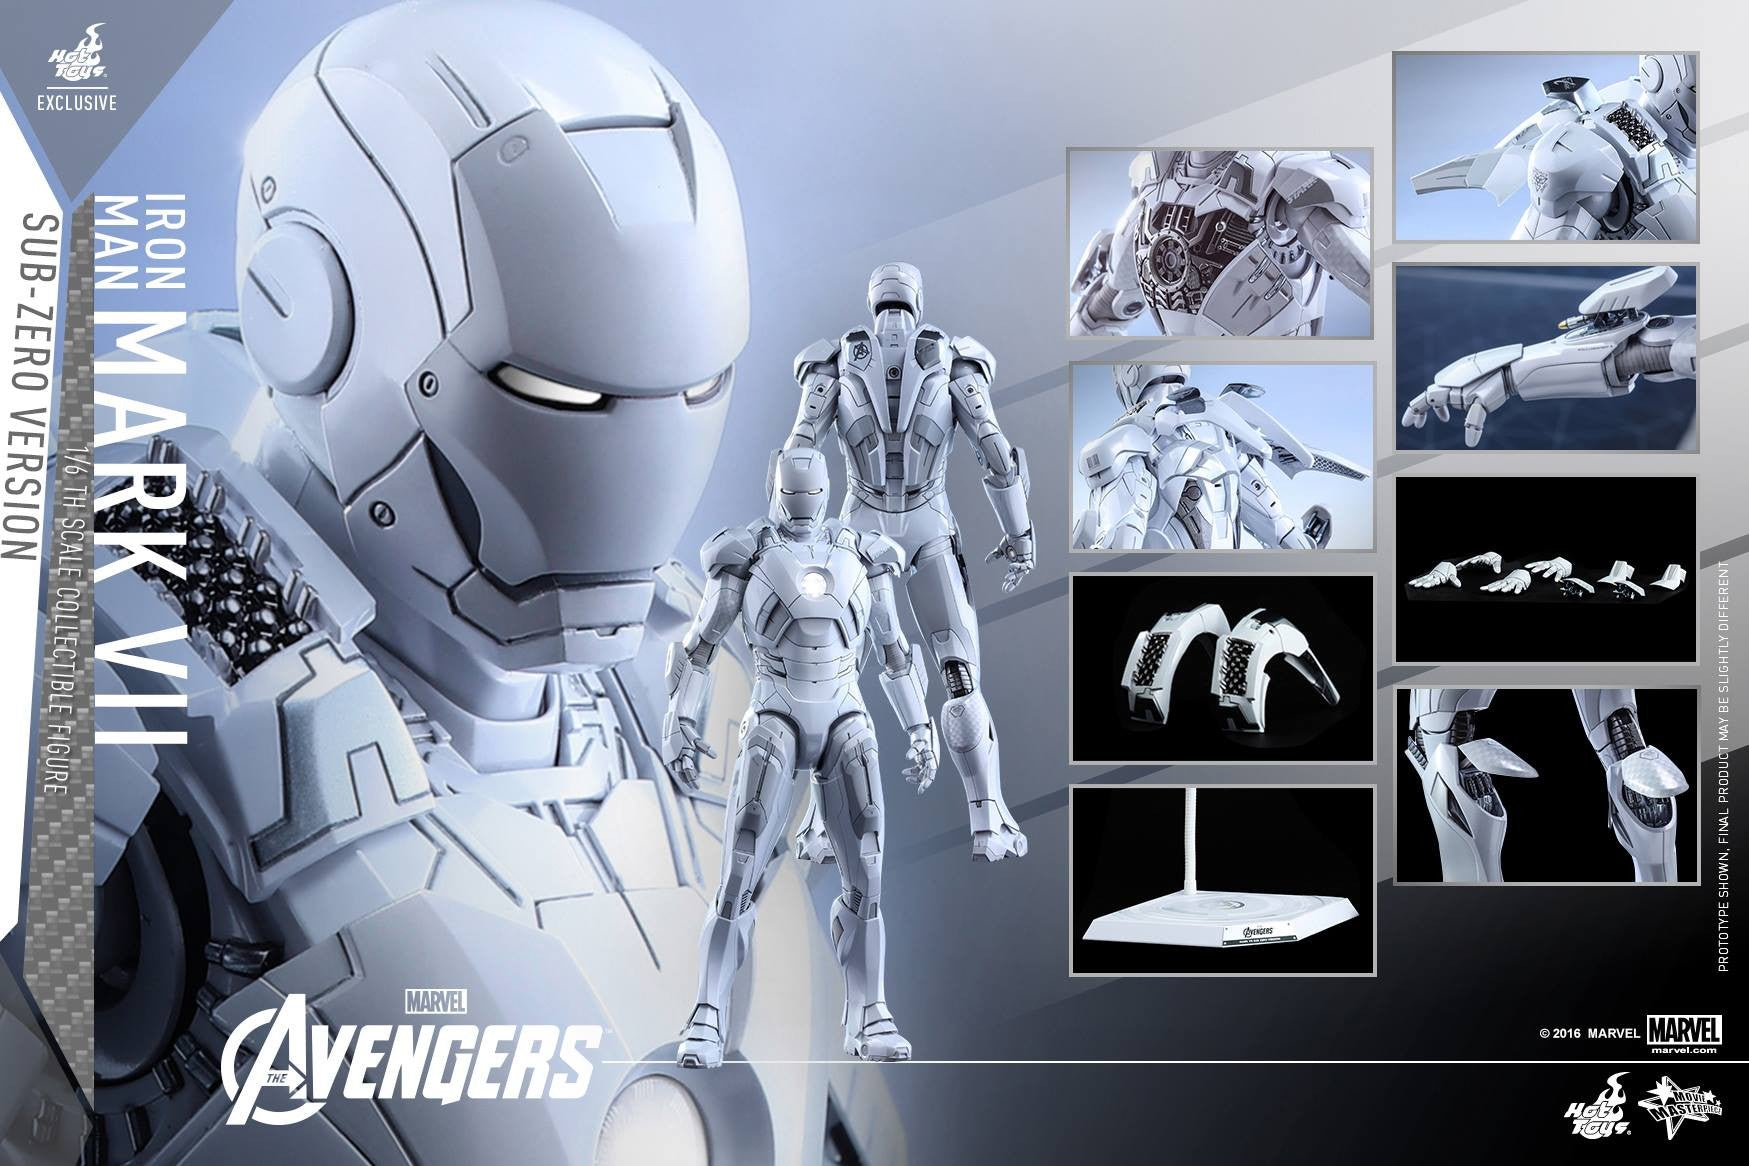 (IN STOCK) Hot Toys - MMS329 - The Avengers - Iron Man Mark VII (Sub-Zero Version) - Marvelous Toys - 10